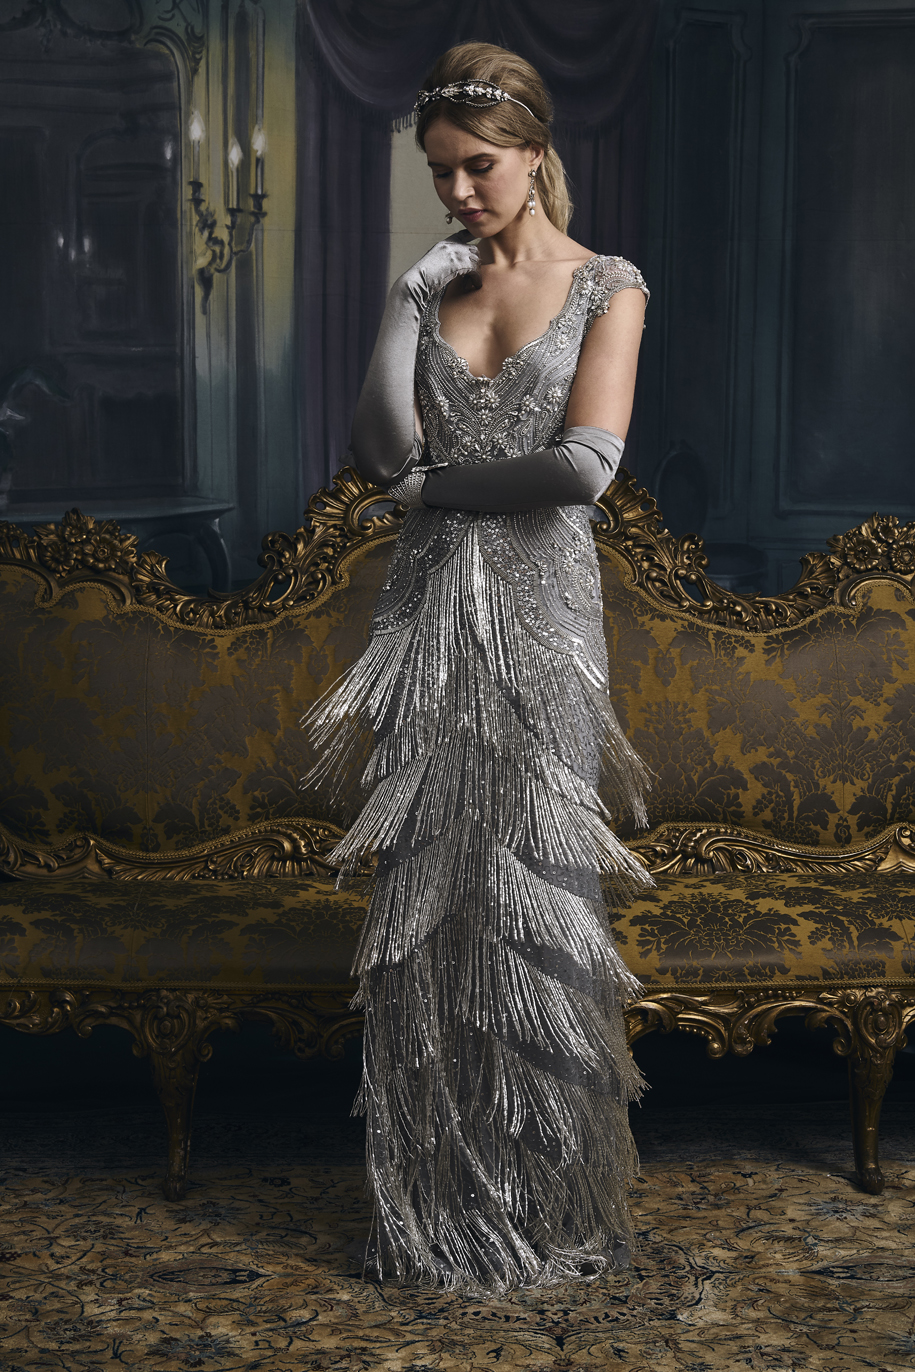 vintage inspired wedding dresses - Carlotta in Silver